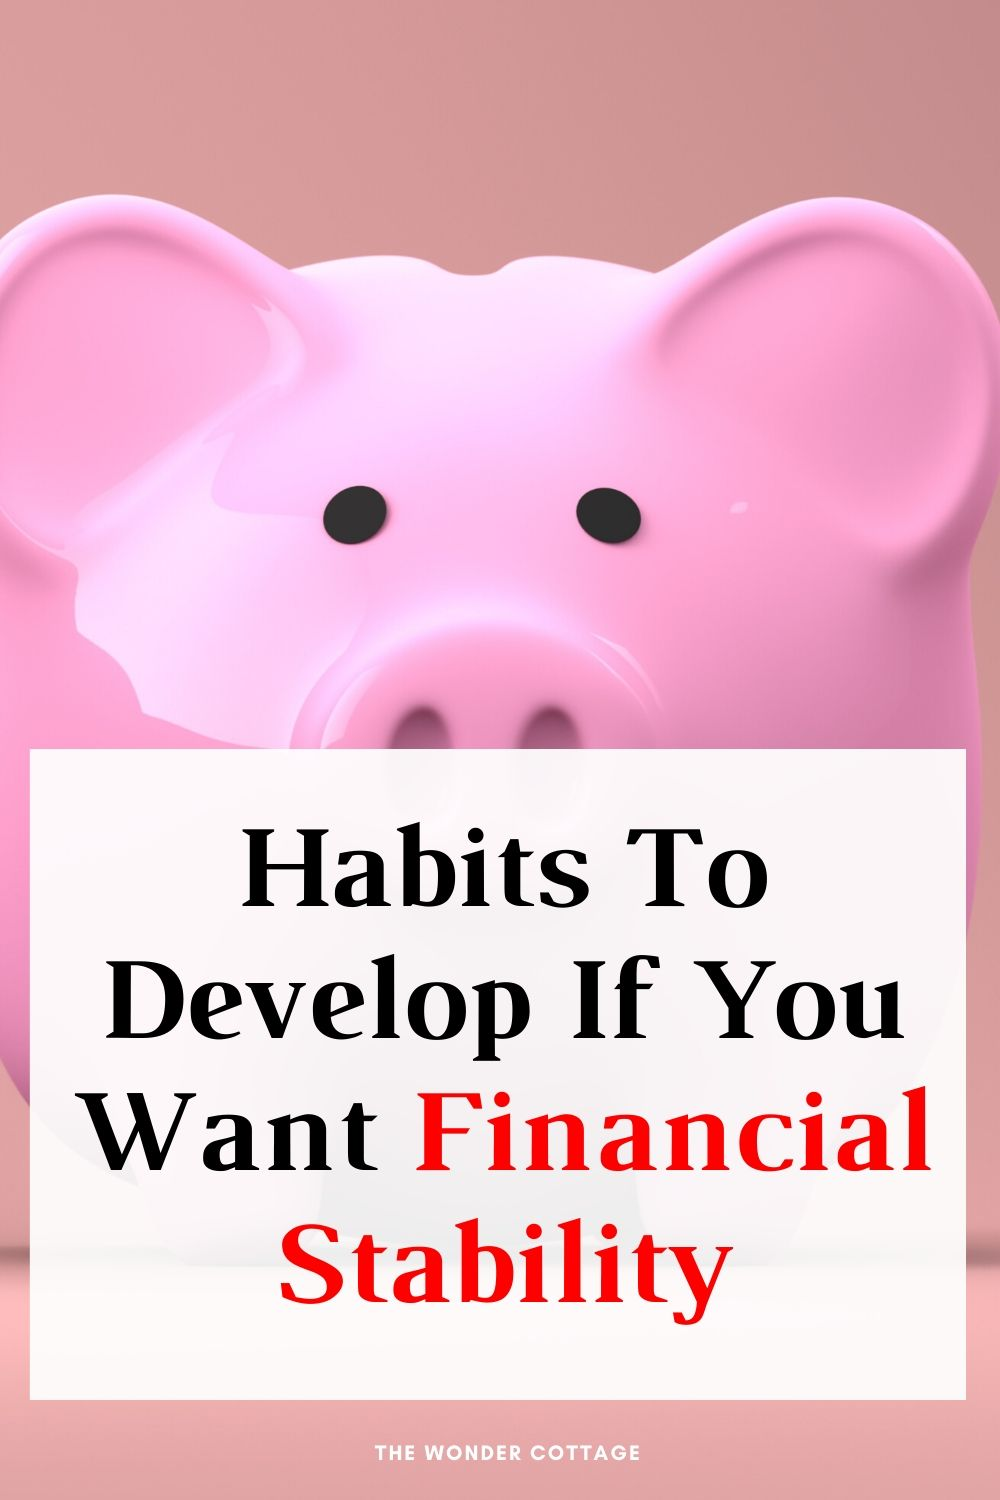 habits to develop if you want financial stability